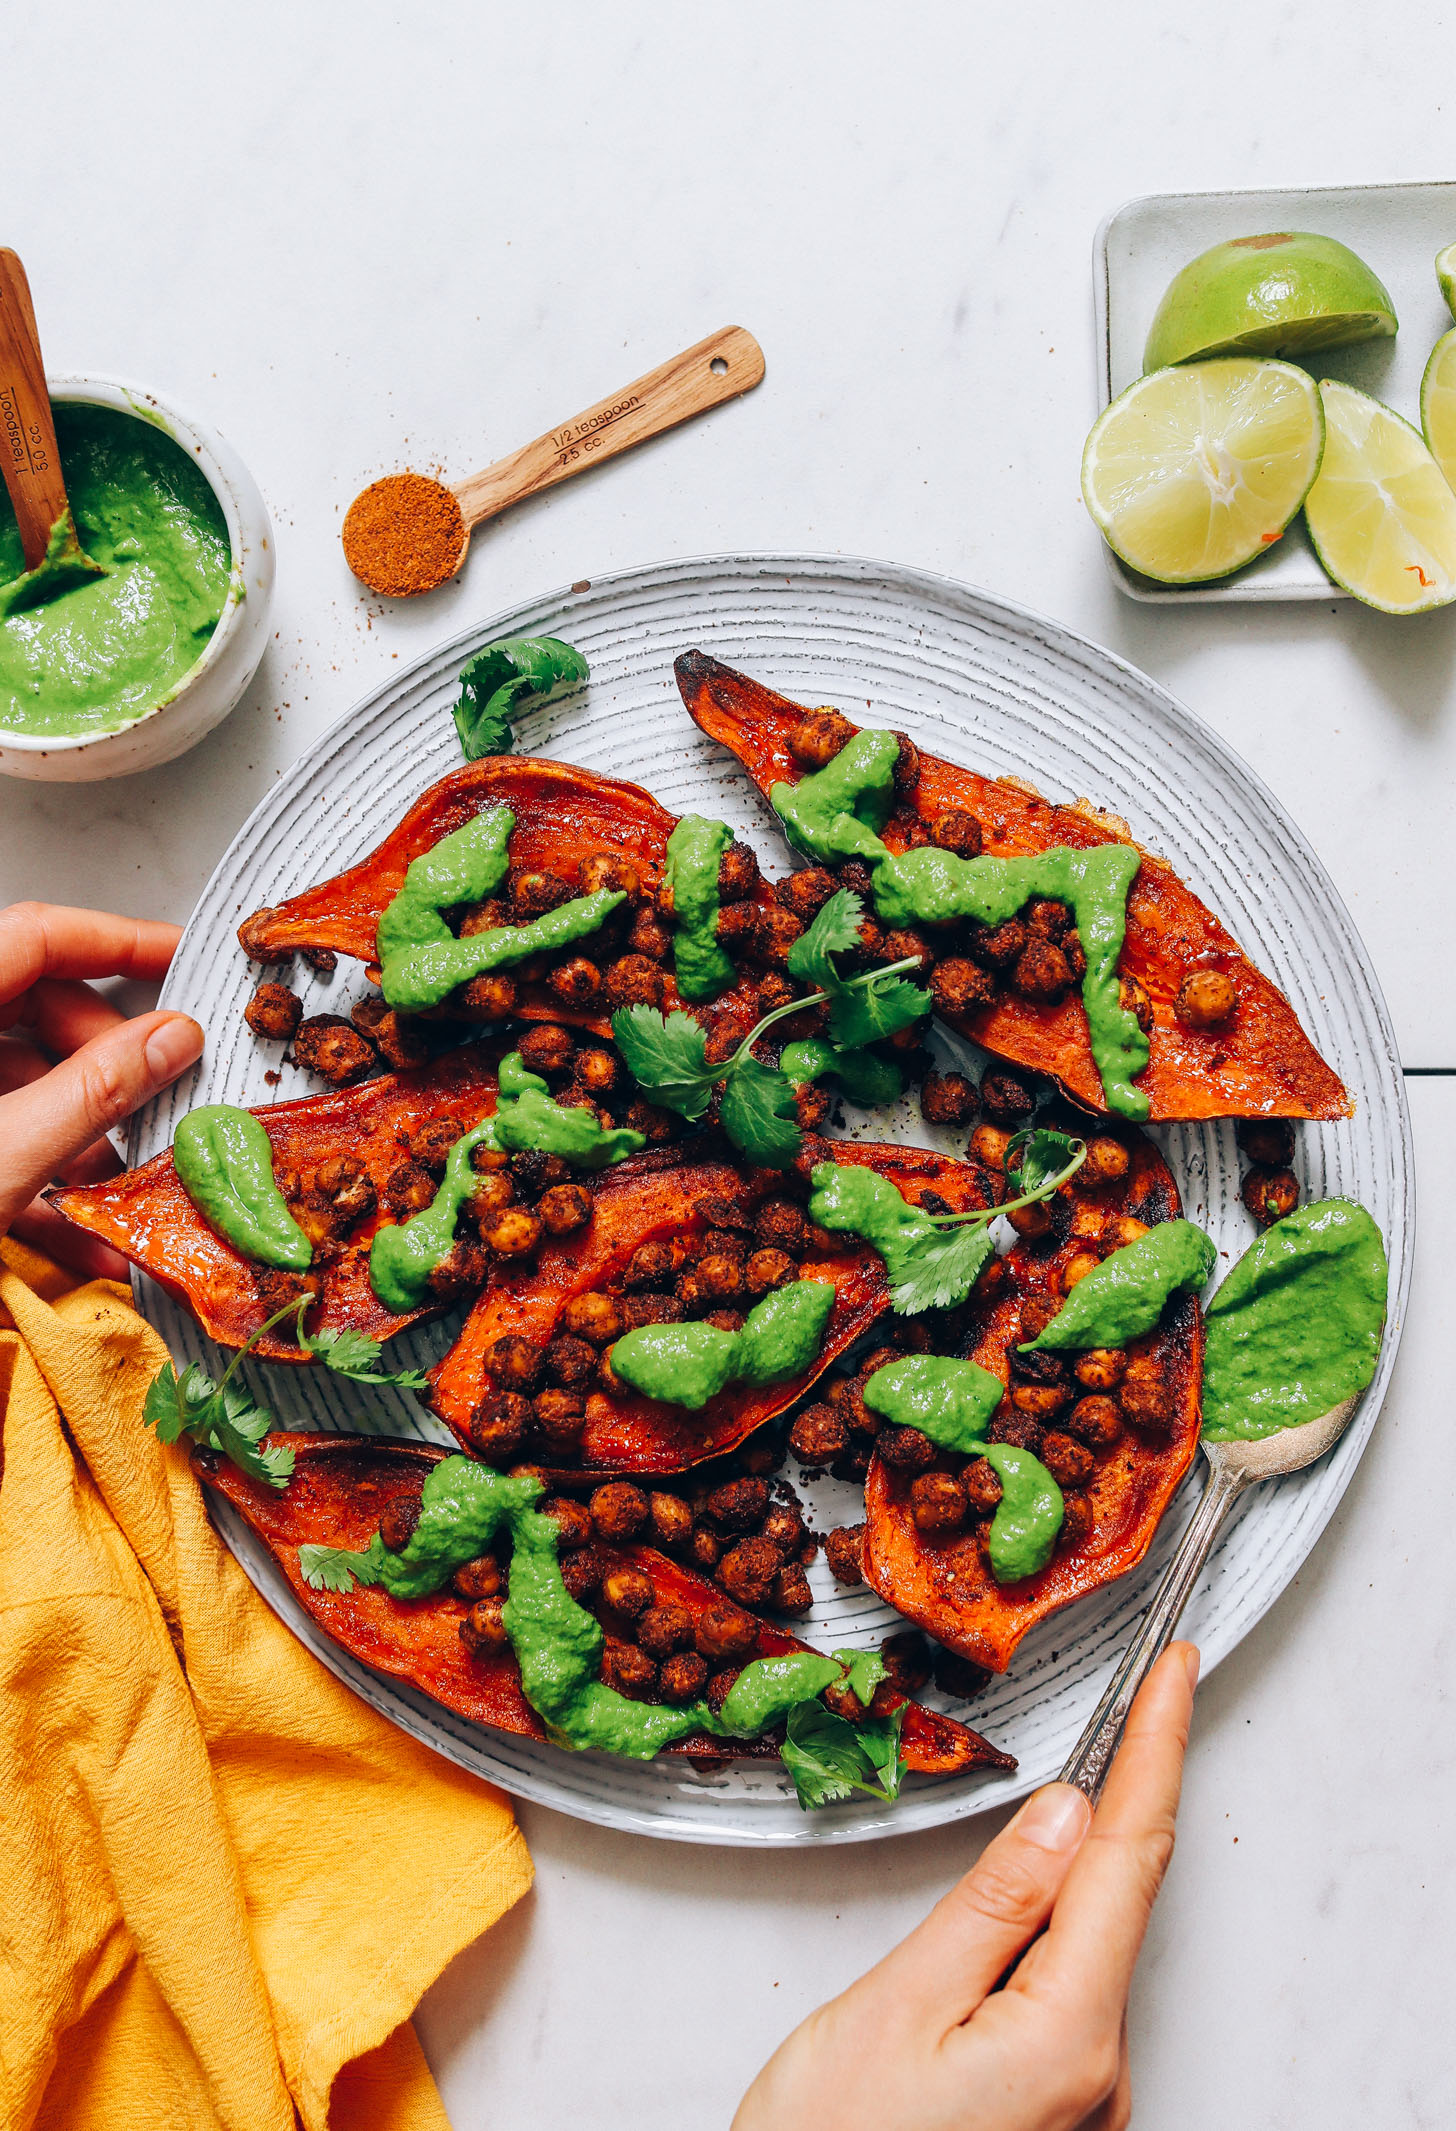 Plate of vegan Masala Chickpea Stuffed Sweet Potatoes with green chutney